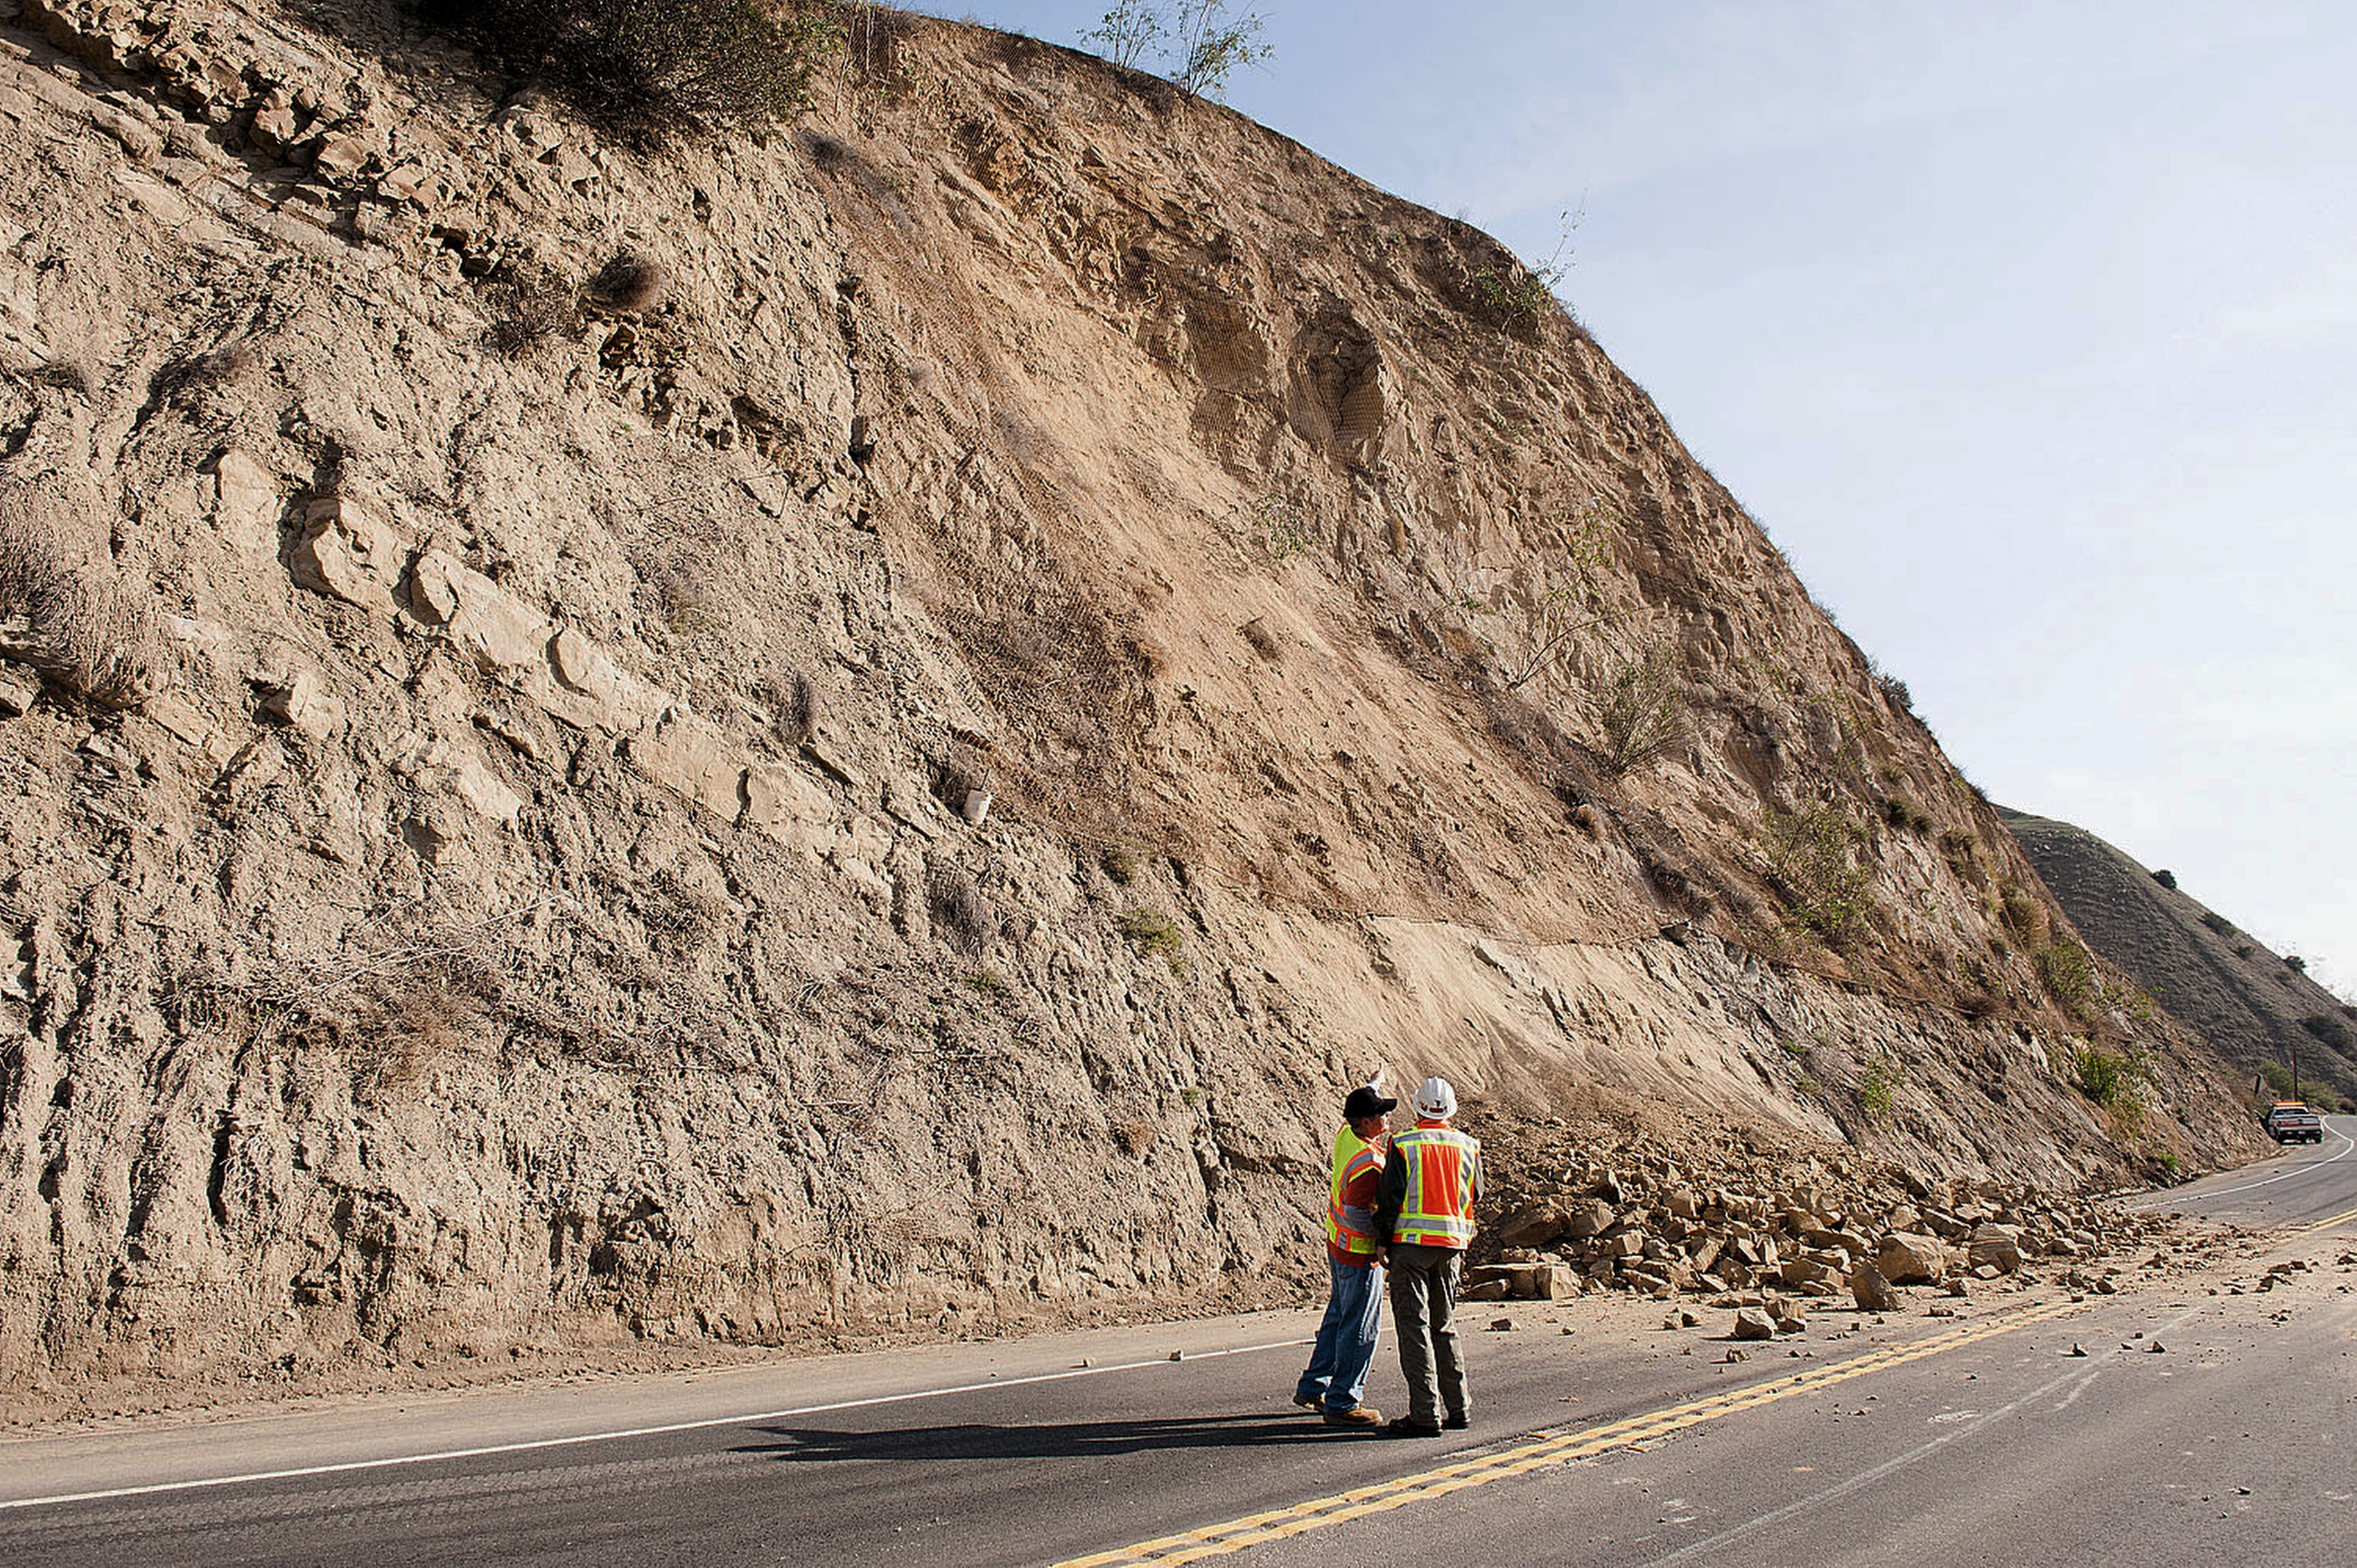 A CalTrans worker and a geologist look at a rock wall where a rockslide closed a road in Brea, Calif., on Saturday after an earthquake hit Orange County Friday night.